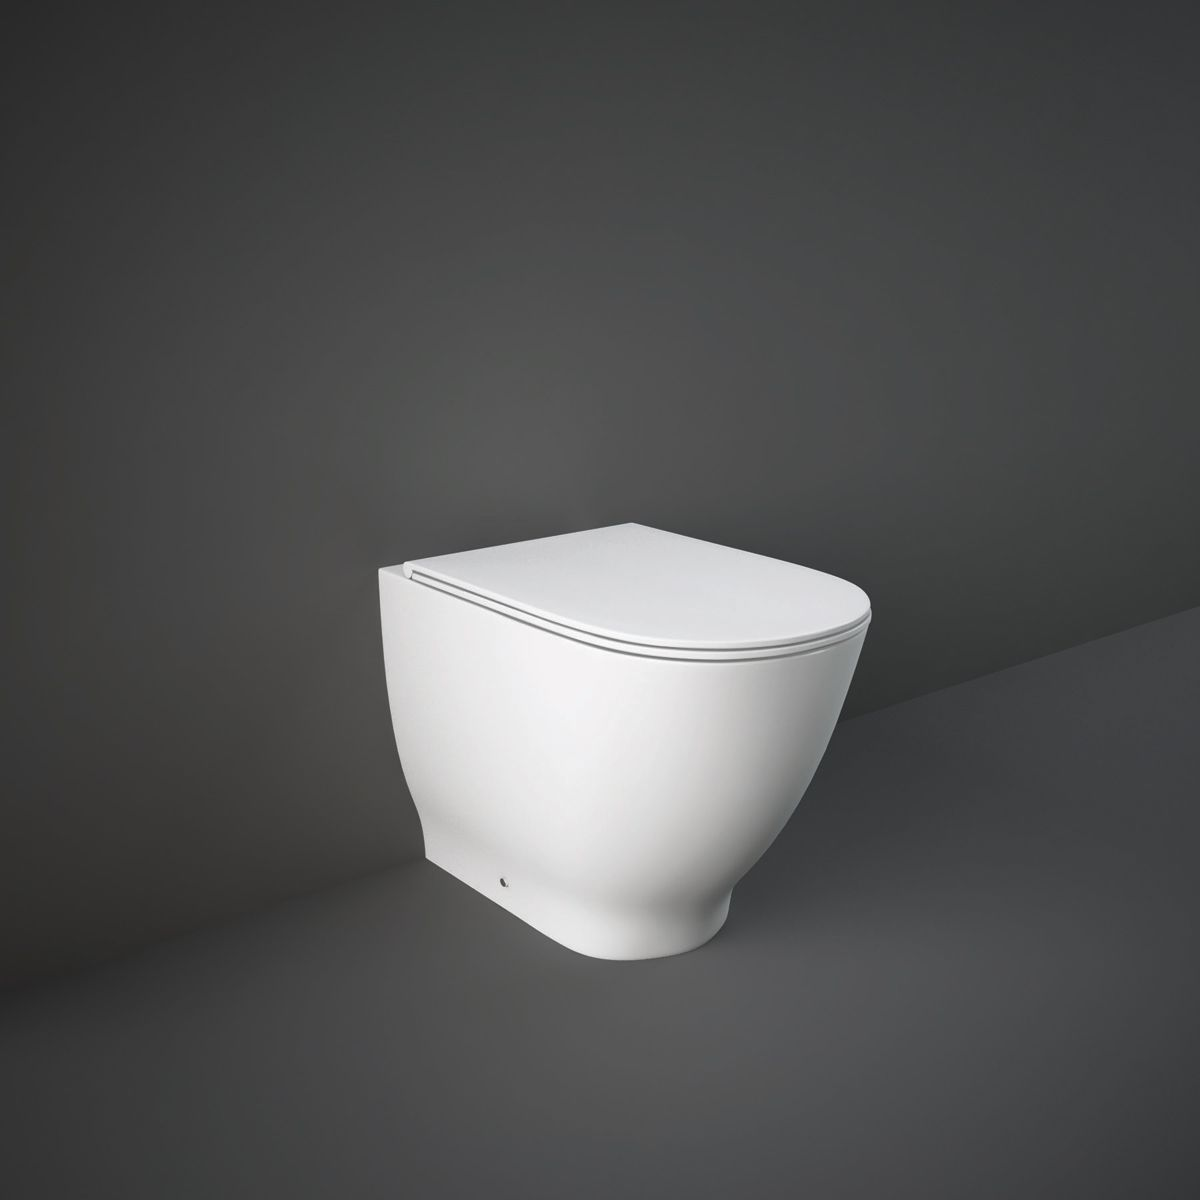 RAK Moon Rimless Back To Wall WC with Soft Close Seat